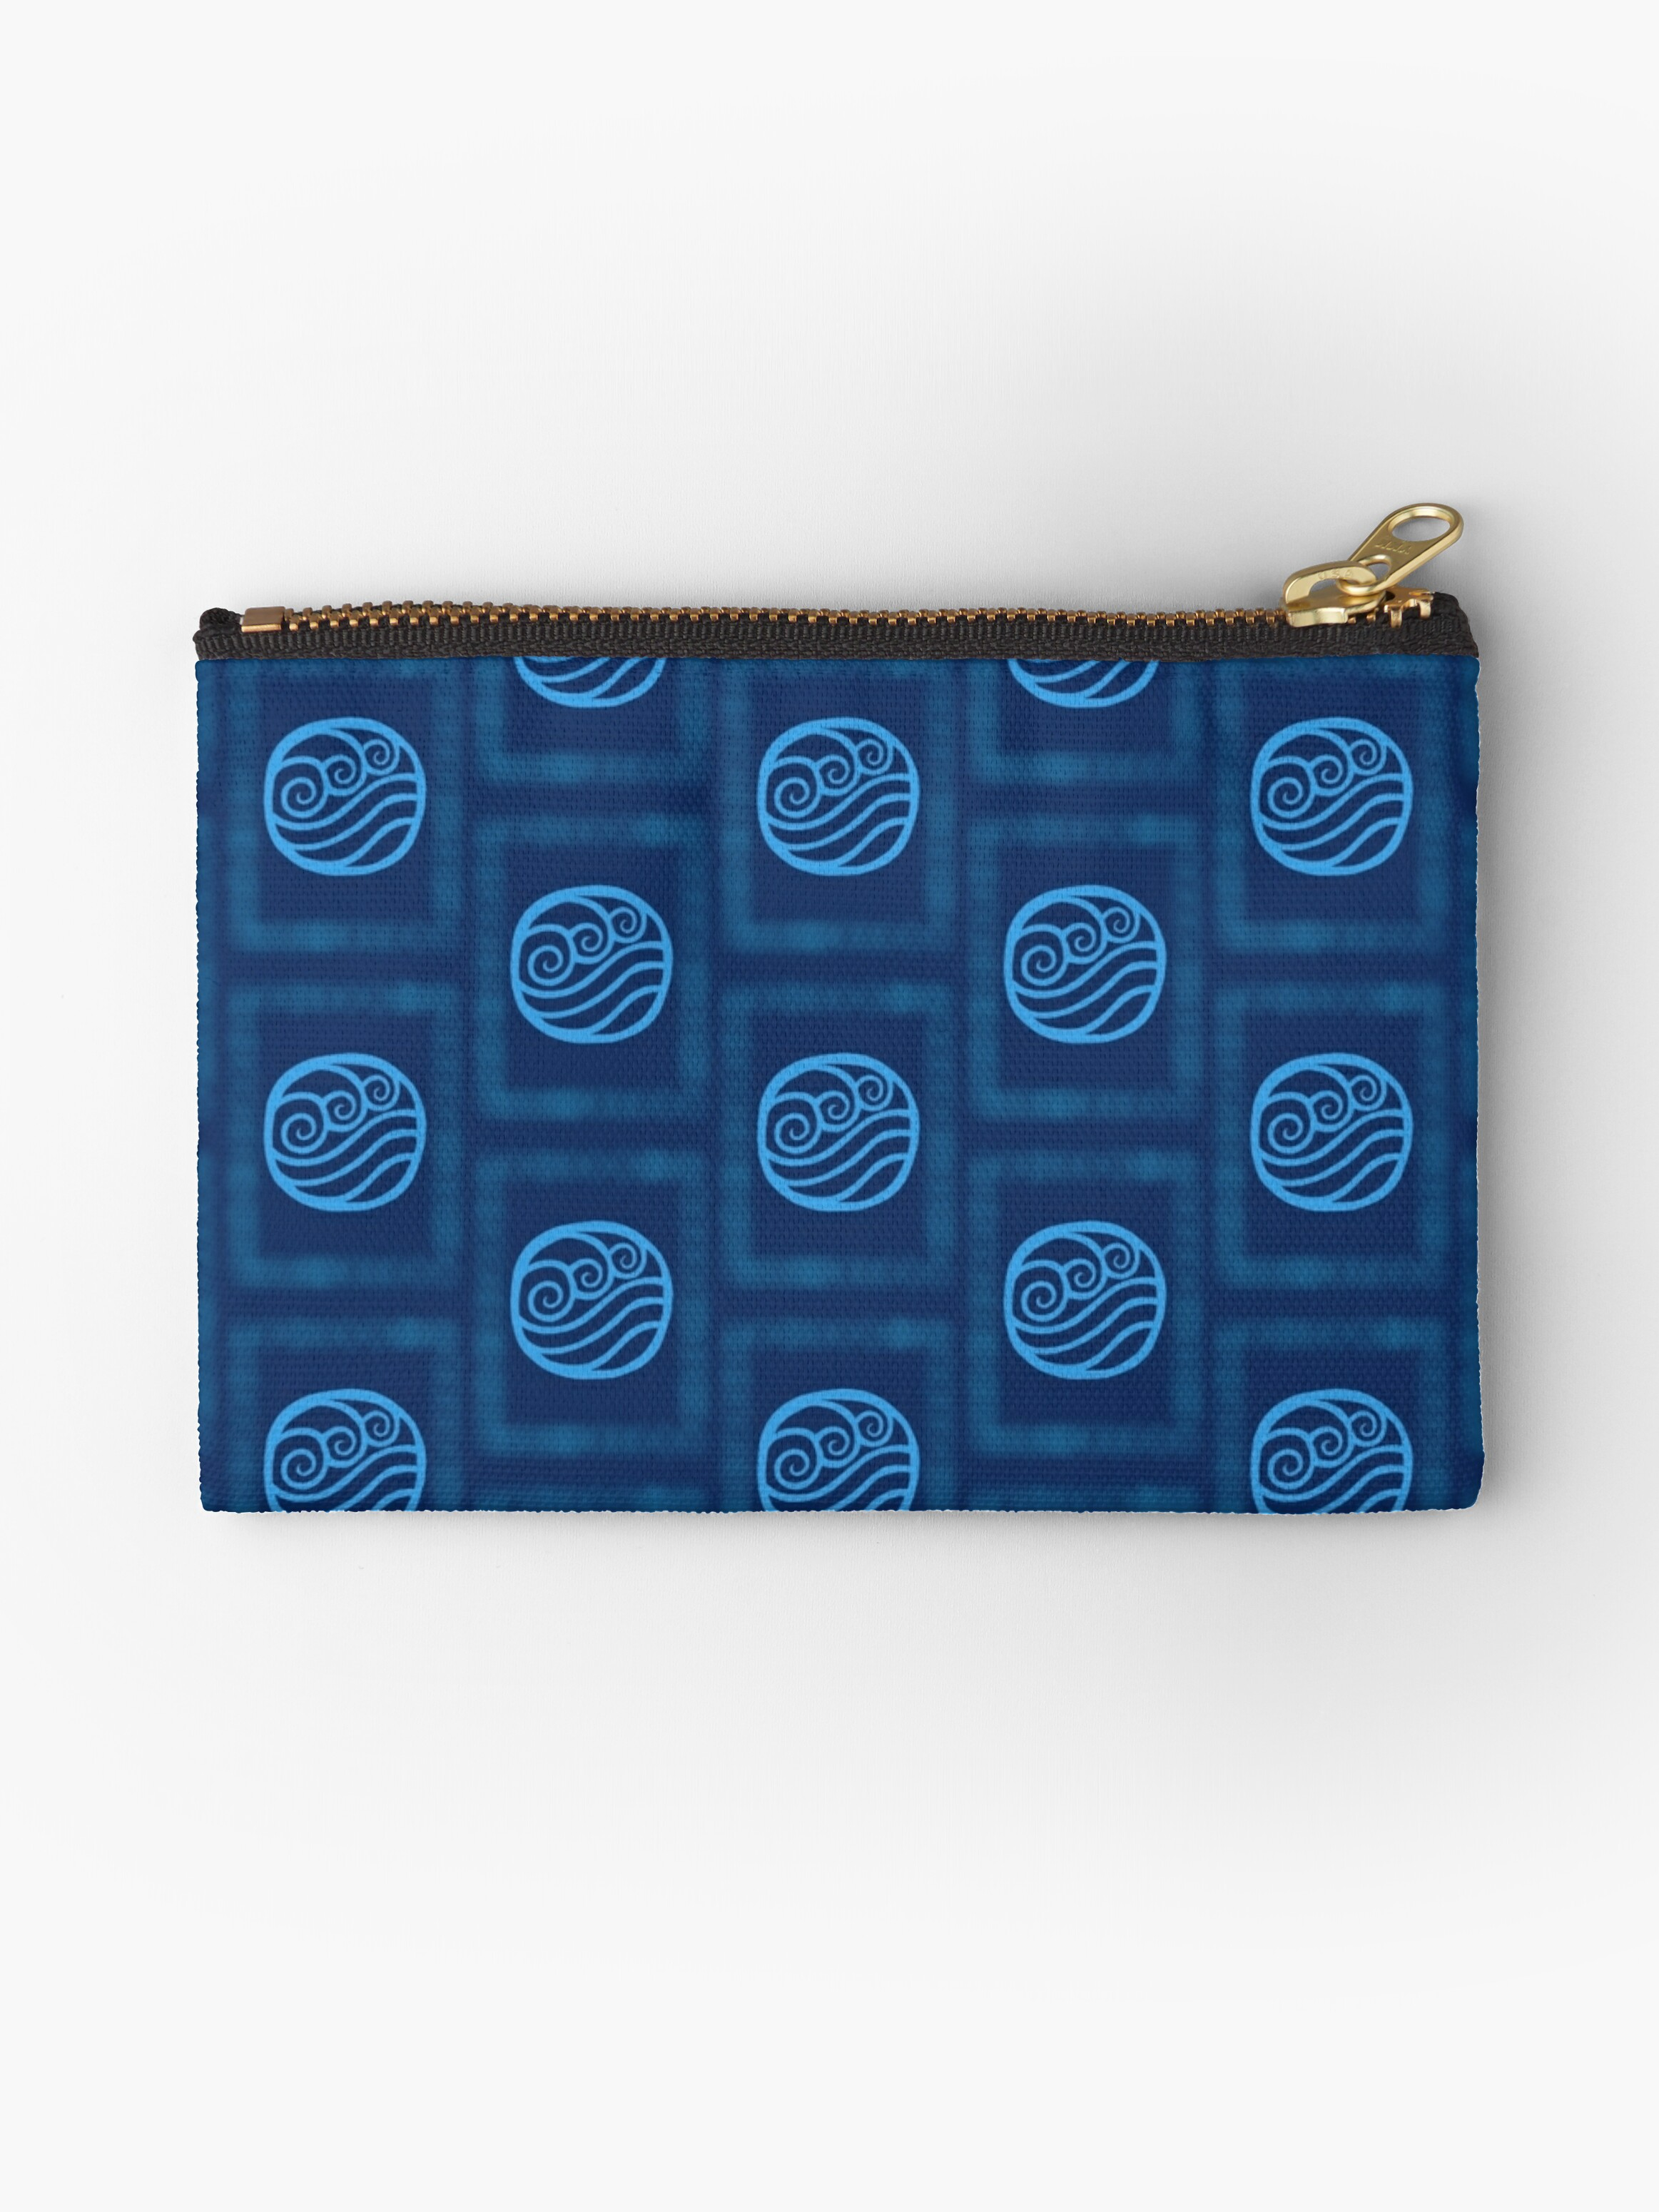 Avatar the last airbender water tribe symbol studio pouches by avatar the last airbender water tribe symbol by angelghosty buycottarizona Gallery